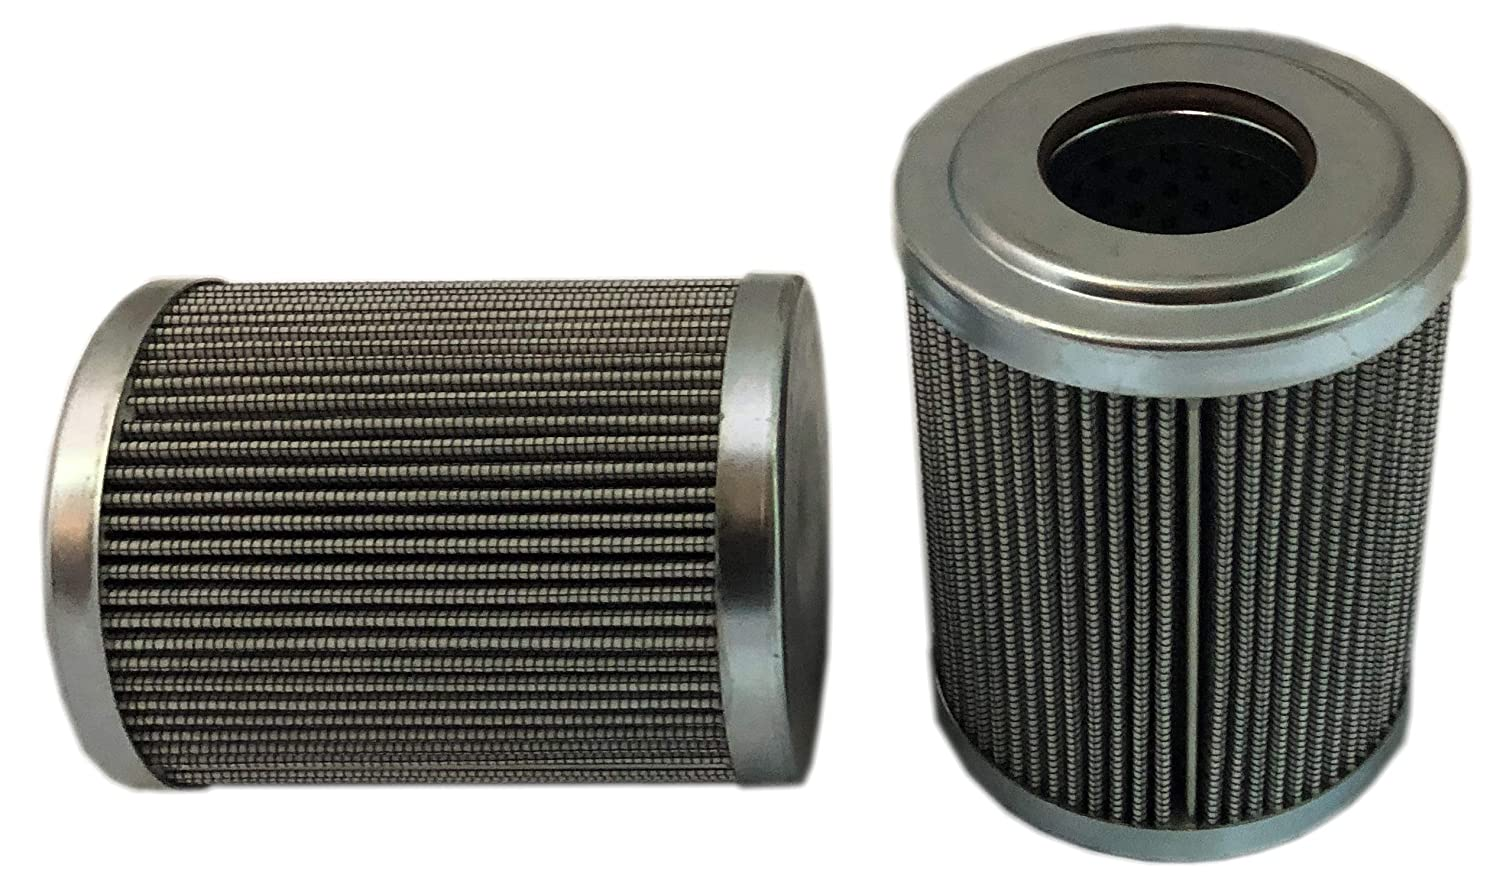 for Allison 3000-4000 Transmissions Includes Gaskets and O-Rings WIX W01AG508 4.2 Inch Replacement Transmission Filter Kit from Big Filter